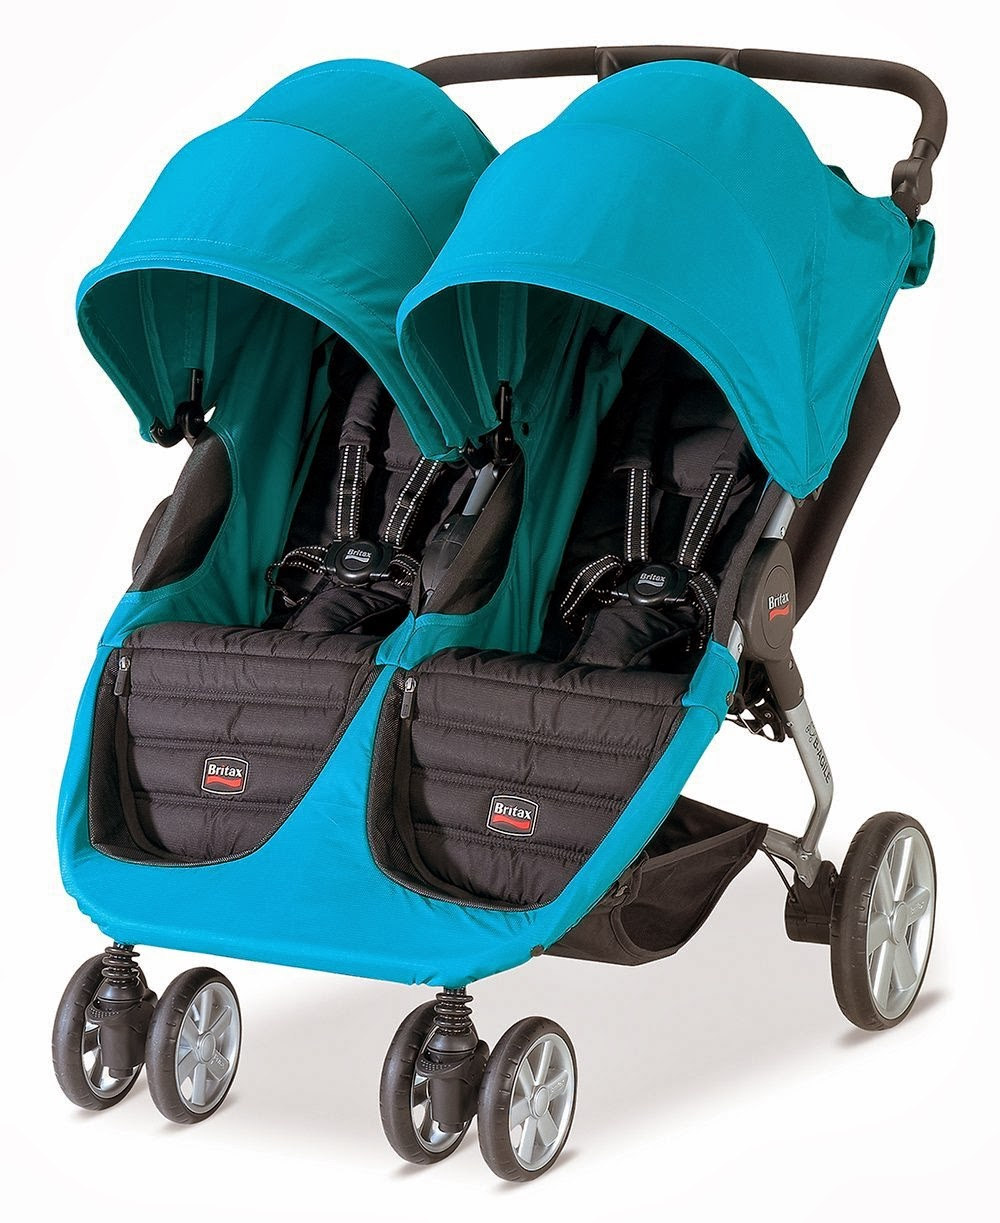 3 Point Harness Infant Car Seat Get Free Image About